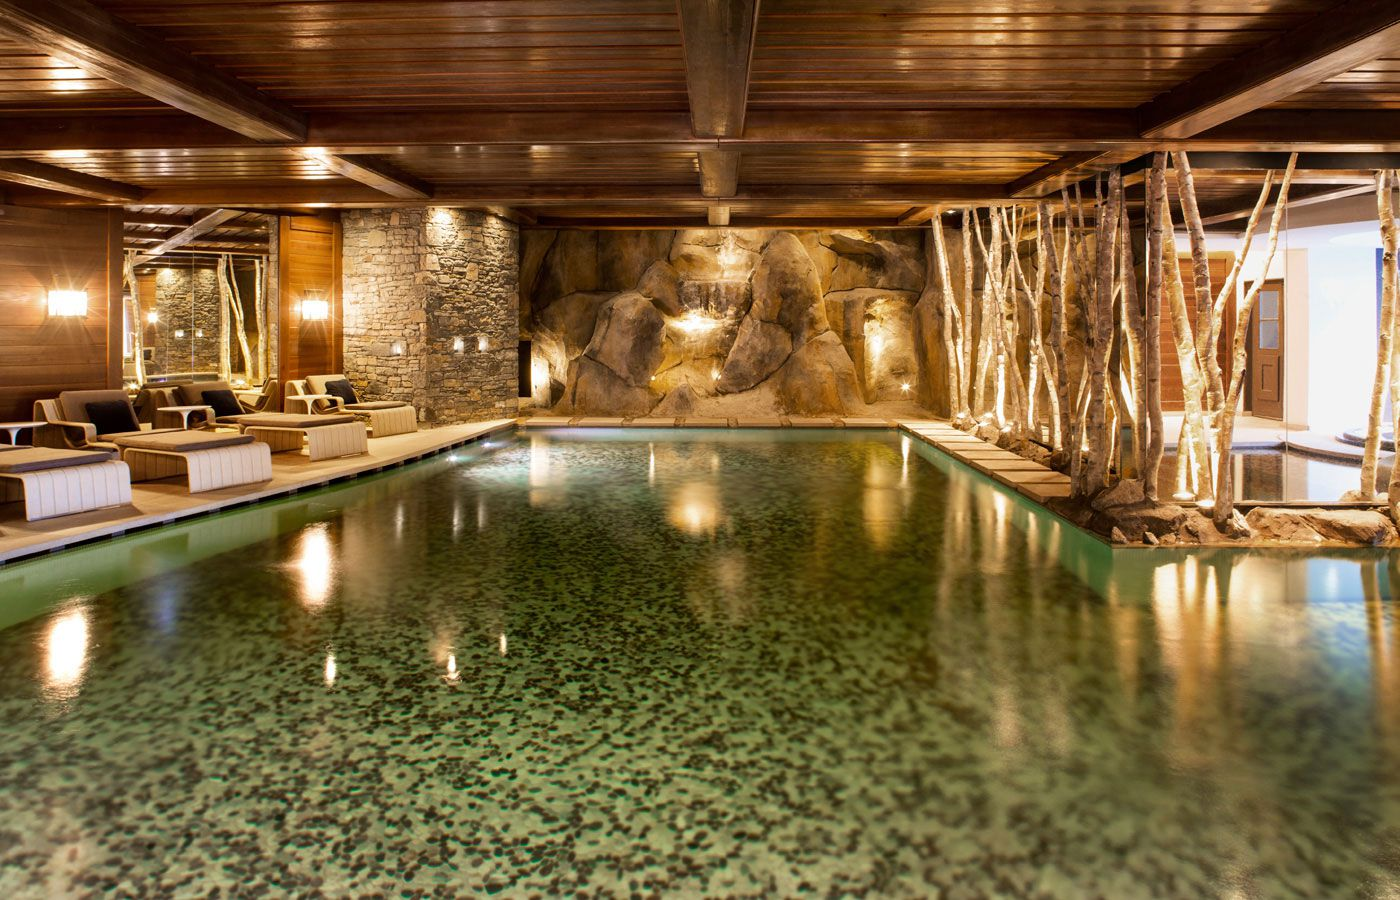 Cheval-Blanc-in-Courchevel-36